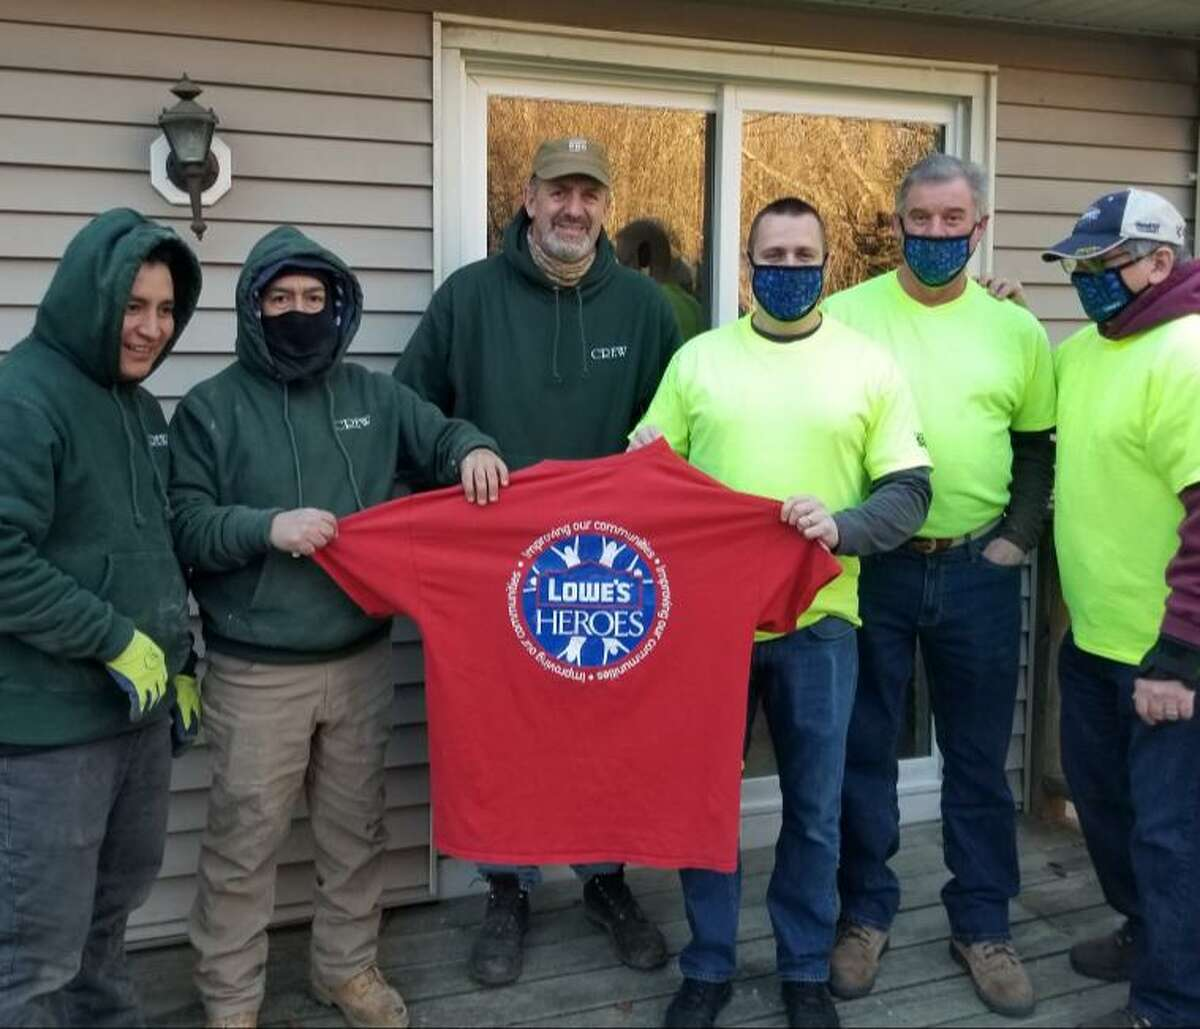 Volunteers recently repaired 90-year-old Bethel resident Julia Herring's home. From left to right: Carlos Javier, Jose Geovanny, Don Bashak, Jeremy Zitofsky, Mike Curley and Bruce Pelaccio. Zitofsky, Curley and Pelaccio are from the LOWES HEROES project in Danbury, while Javier, Geovanny and Bashak are from Don Bashak, LLC.